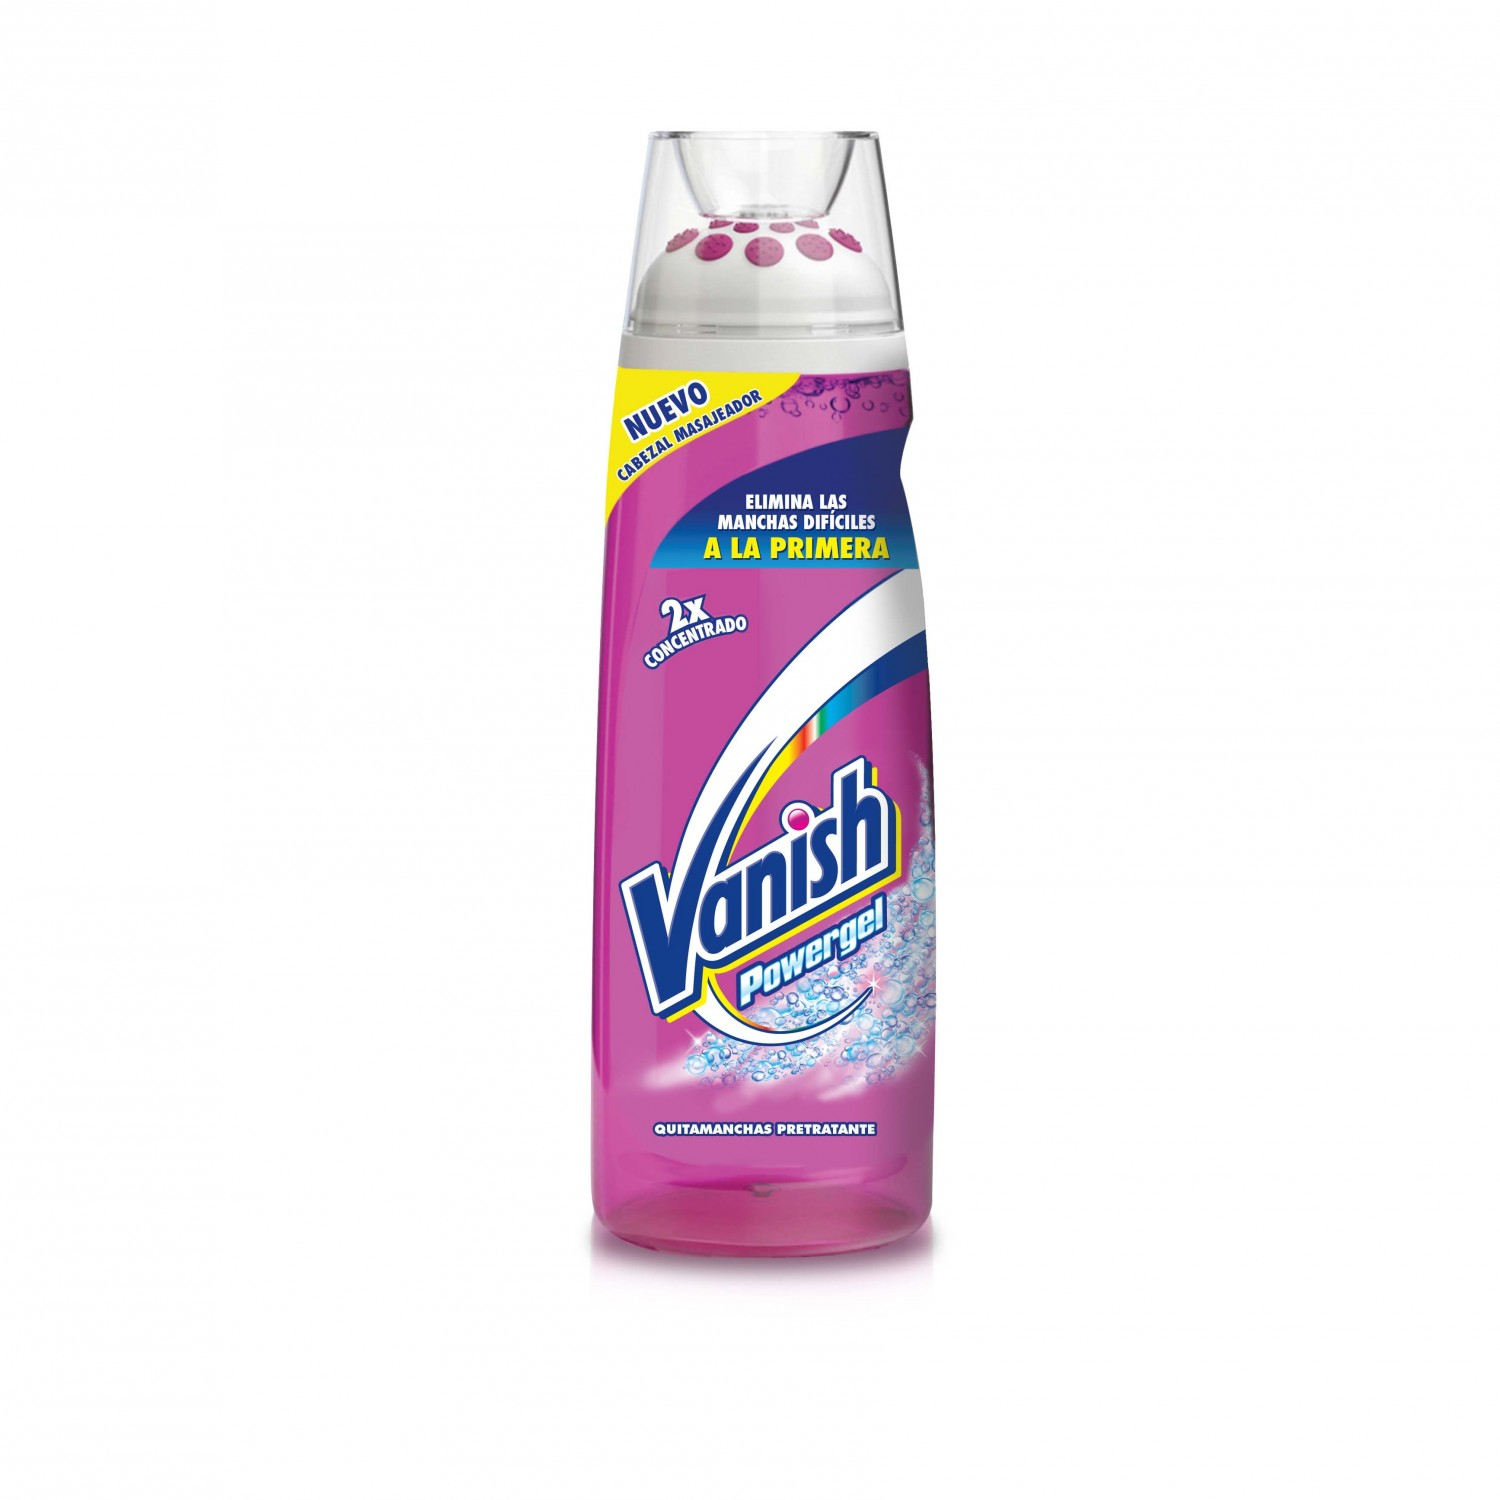 Vanish quitamanchas petrante powergel de 20cl. en botella